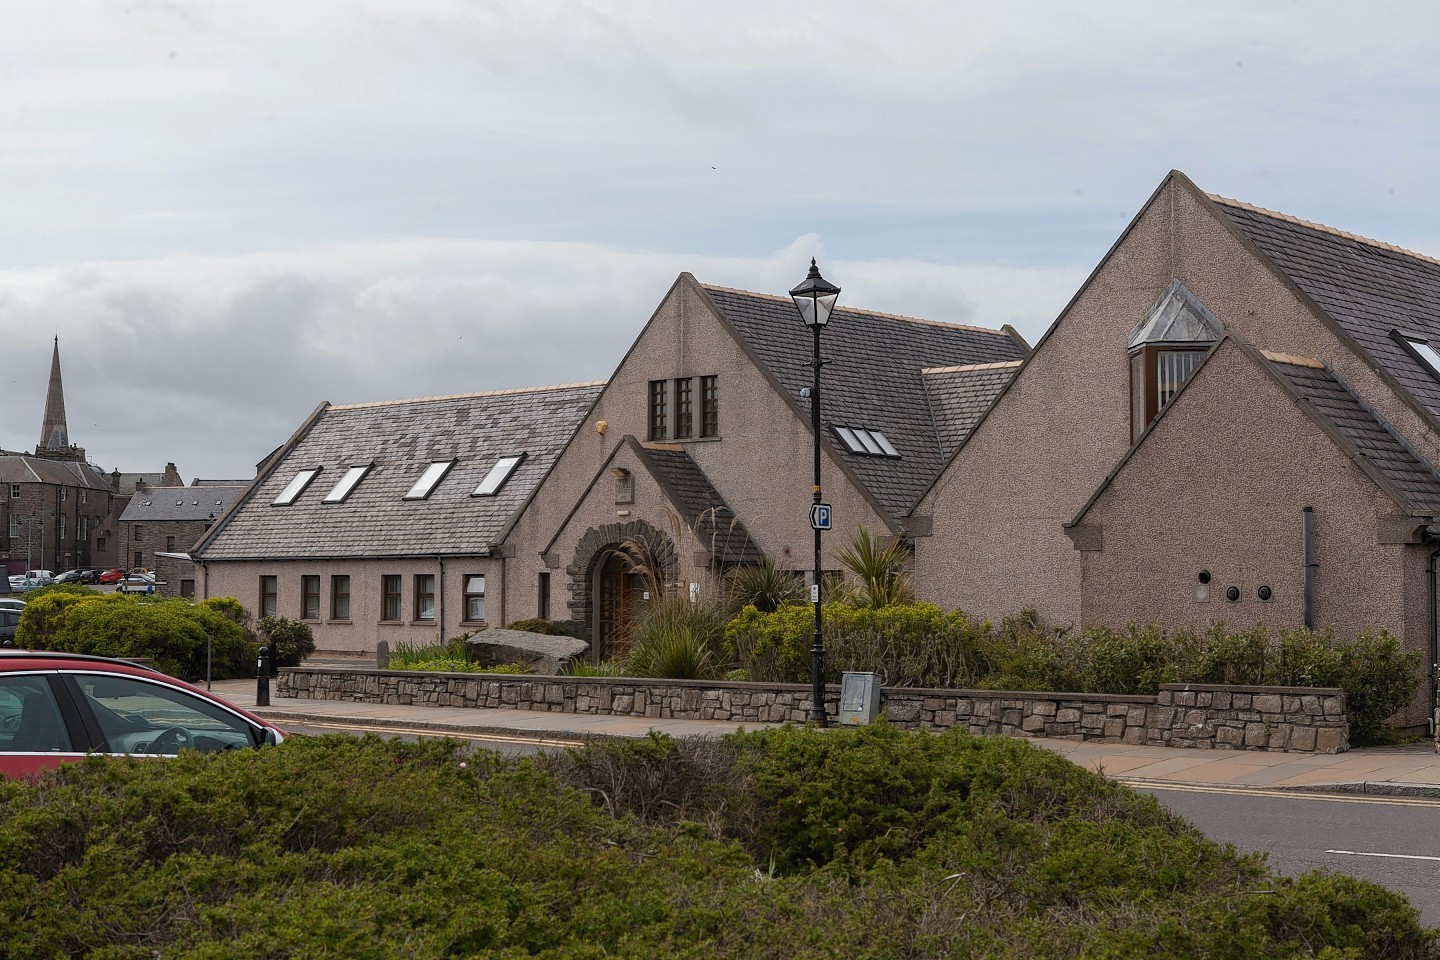 Wick Medical Centre where Wick Riverview Practice is based.